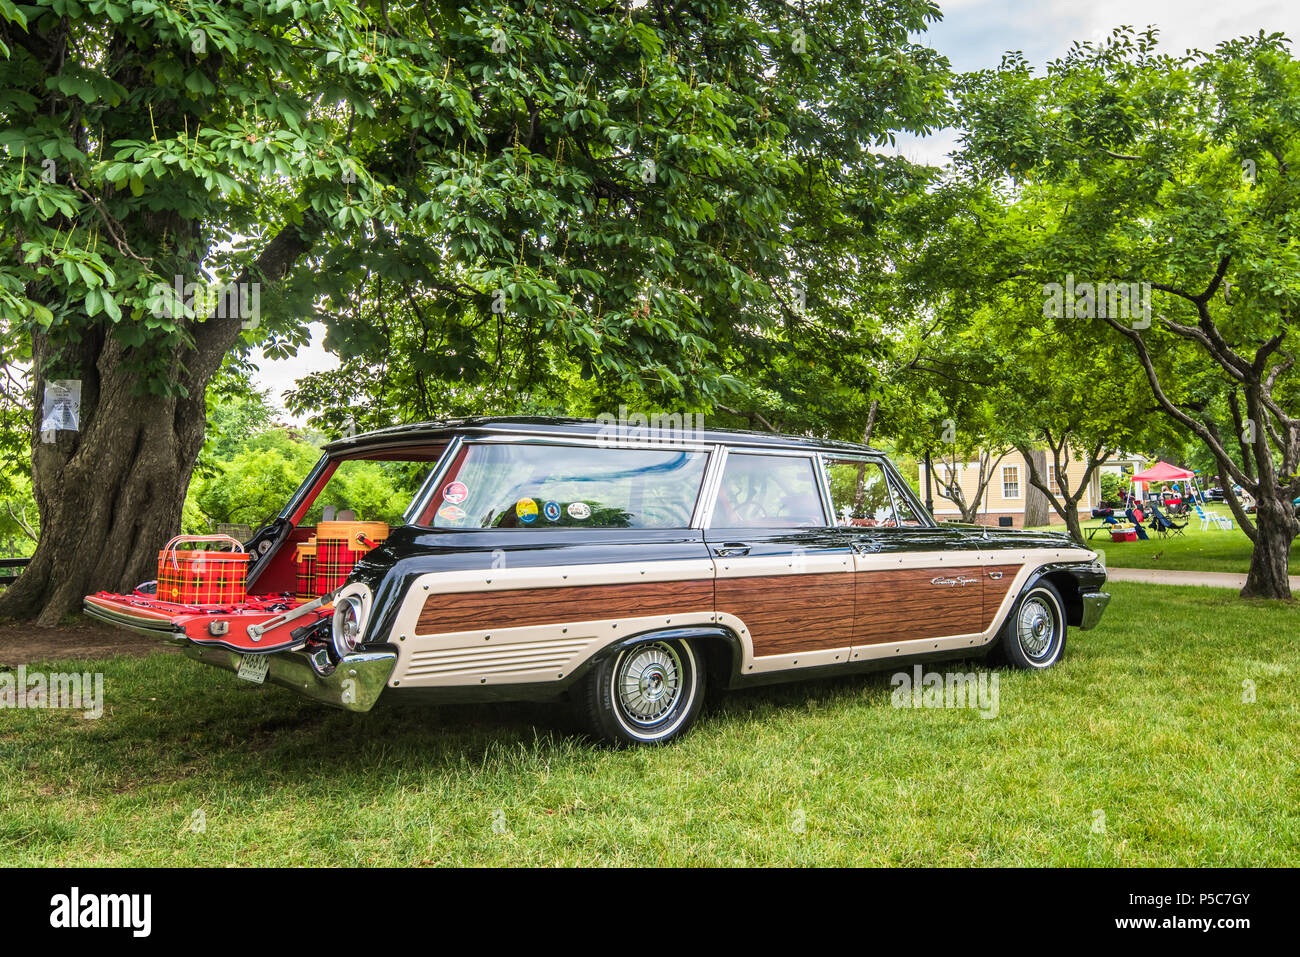 DEARBORN MIUSA JUNE A Ford Galaxie Country Squire - Henry ford car show